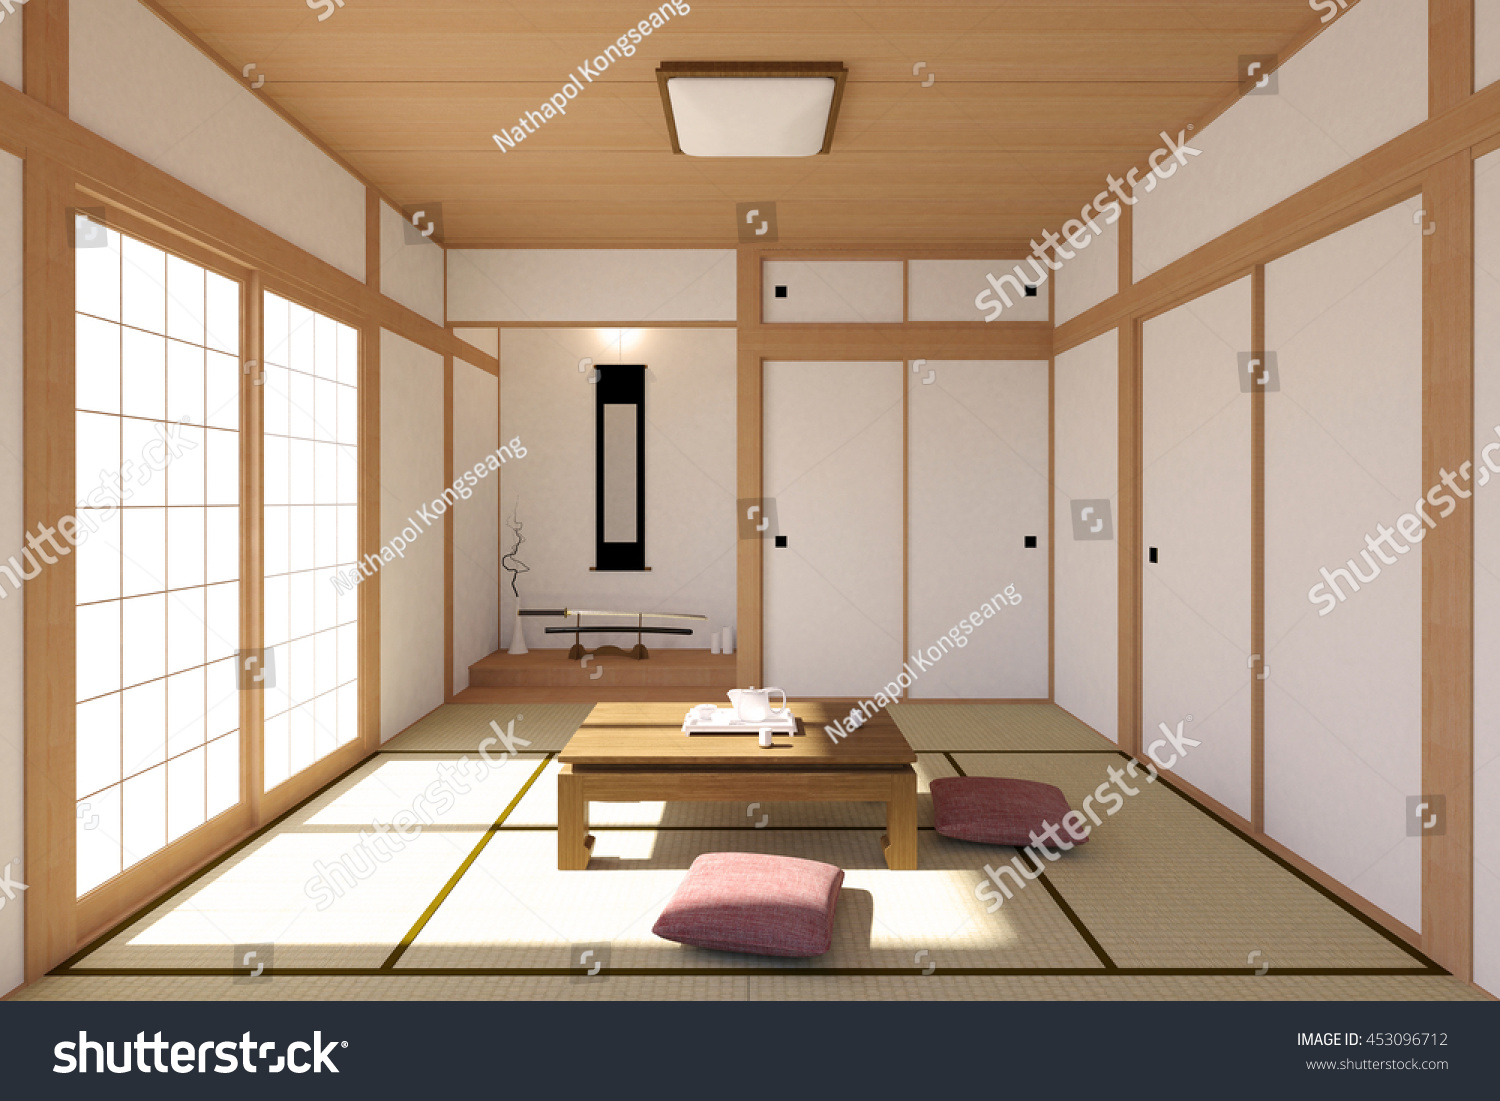 Japanese living room interior in traditional and minimal design with tatami mat floor japanese shoji